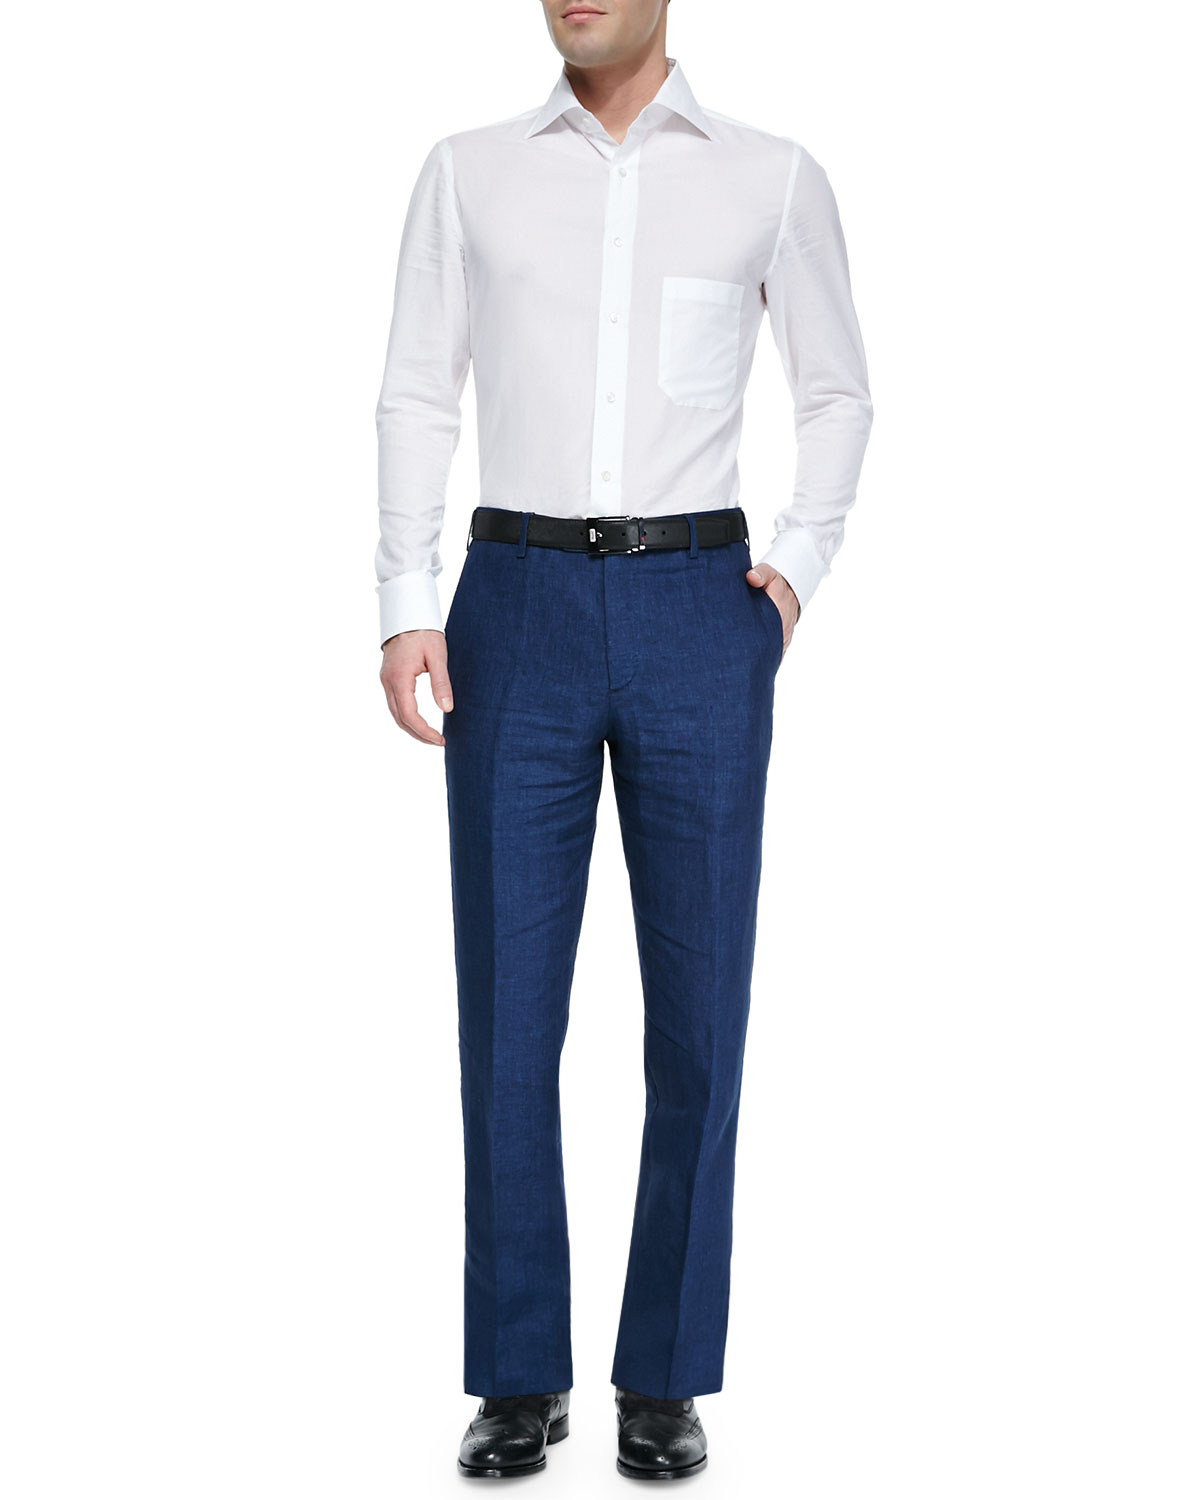 Blue Dress Pants For Men